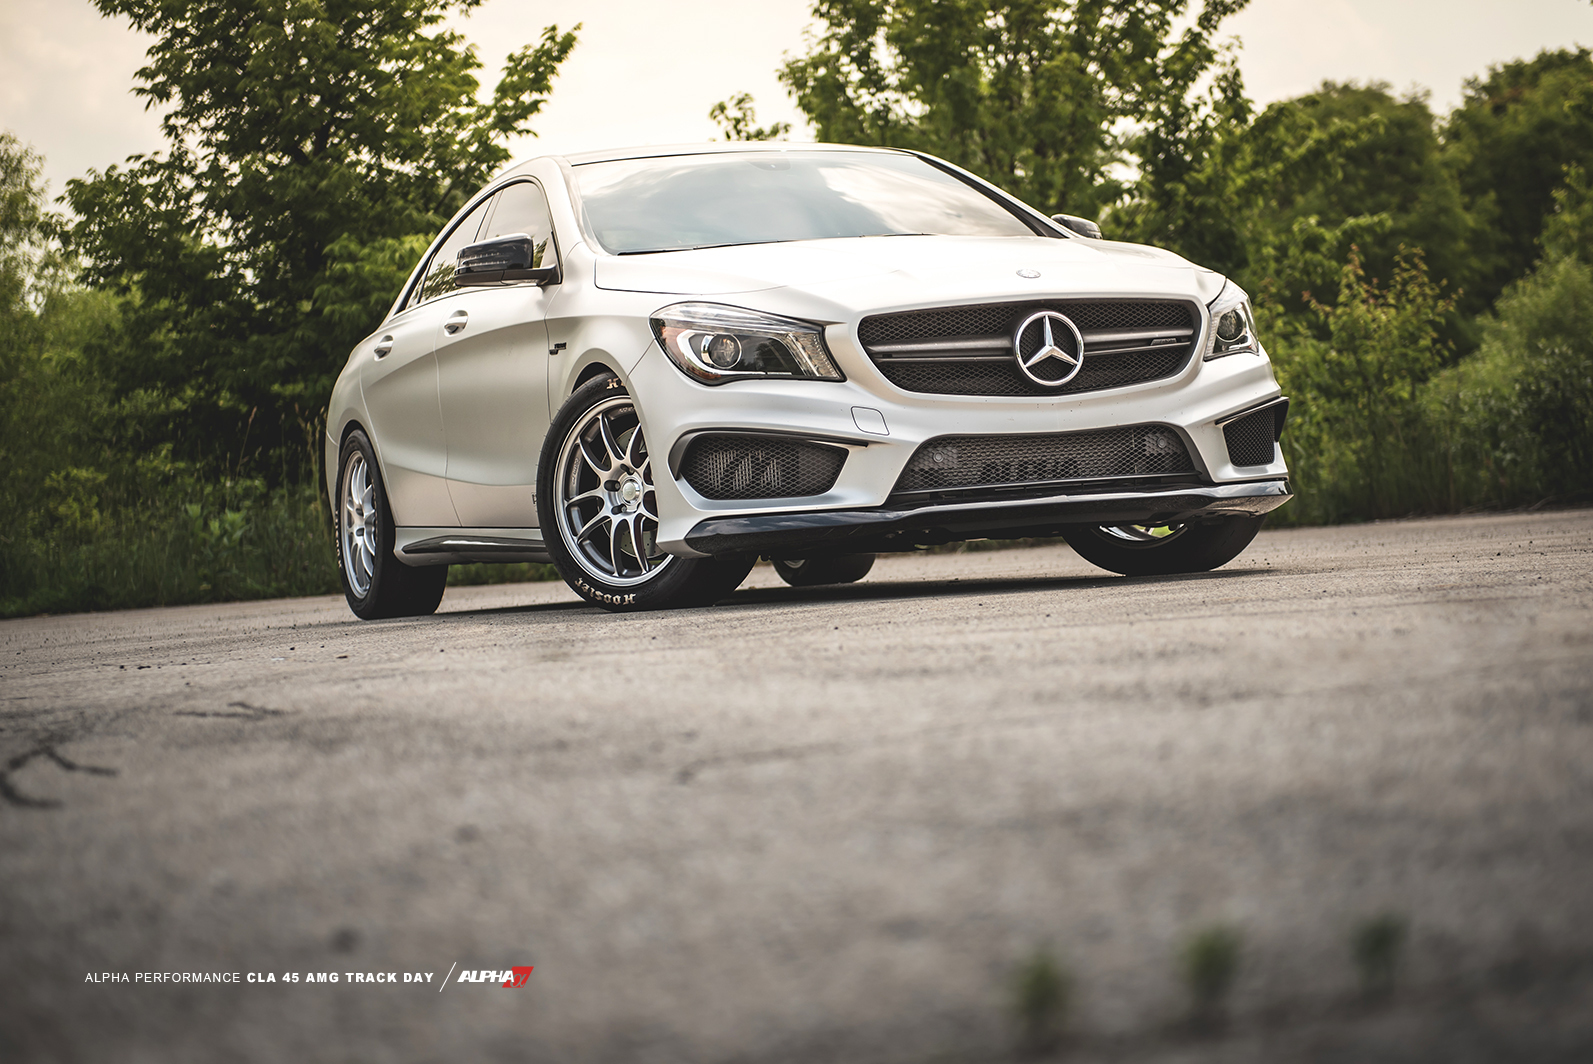 2014 mercedes benz cla45 amg amg 1 4 mile trap speeds 0 60 for Mercedes benz cla45 amg 0 60